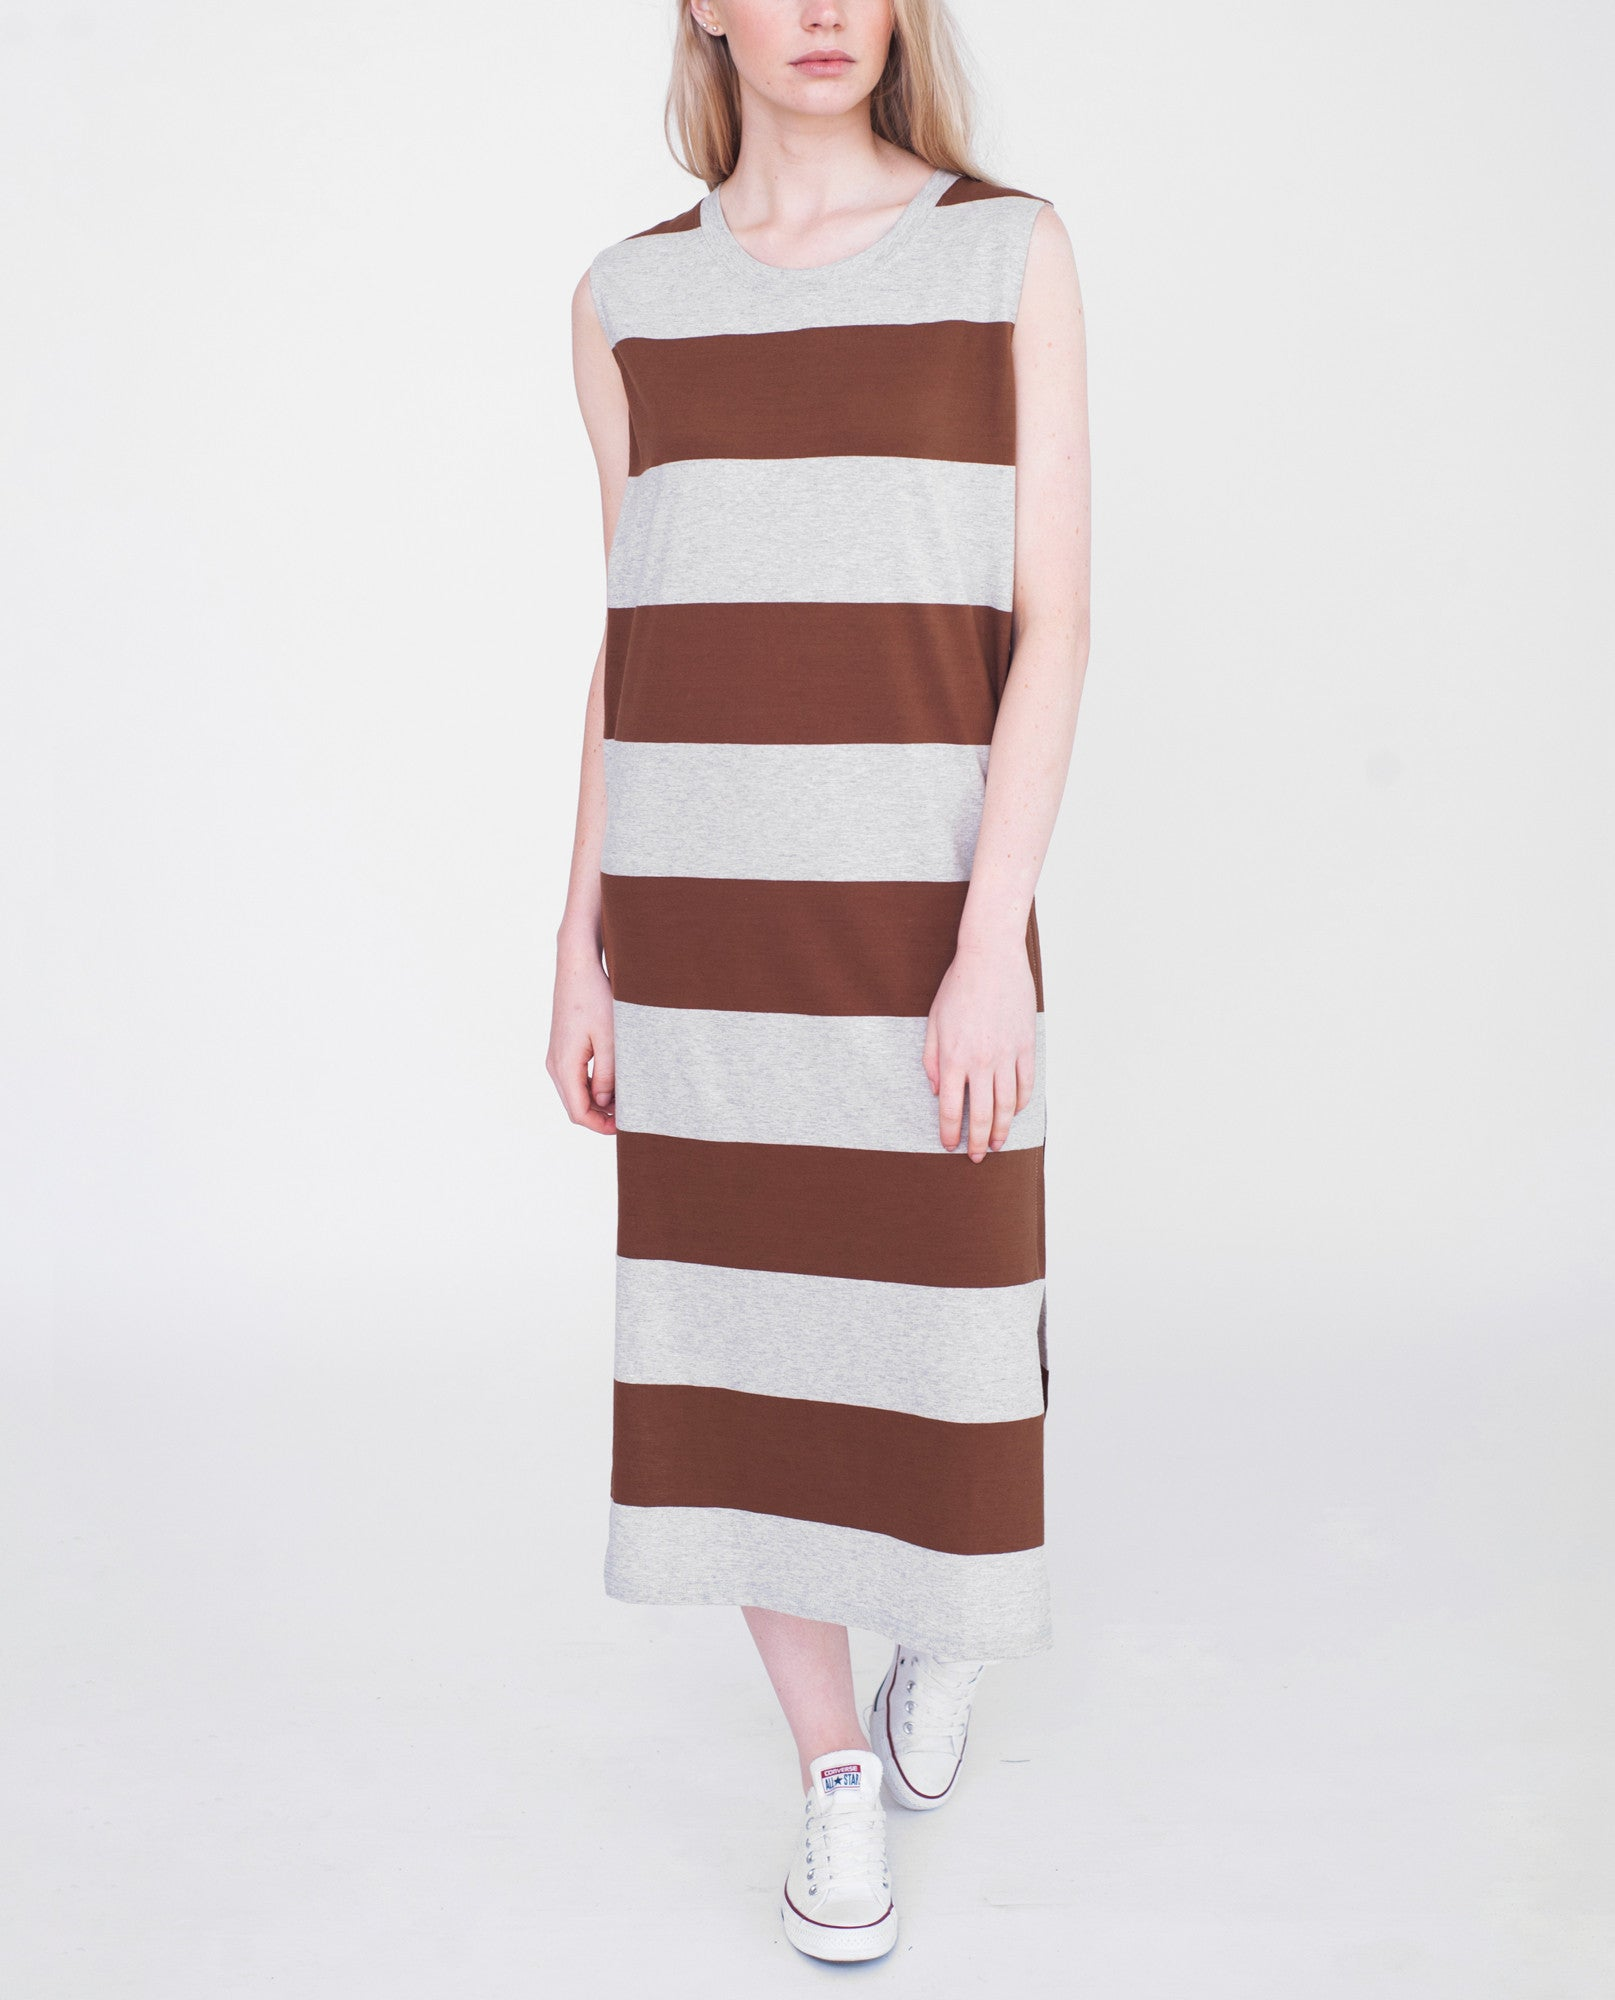 PIPER Organic Cotton Dress In Light Grey And Brown from Beaumont Organic